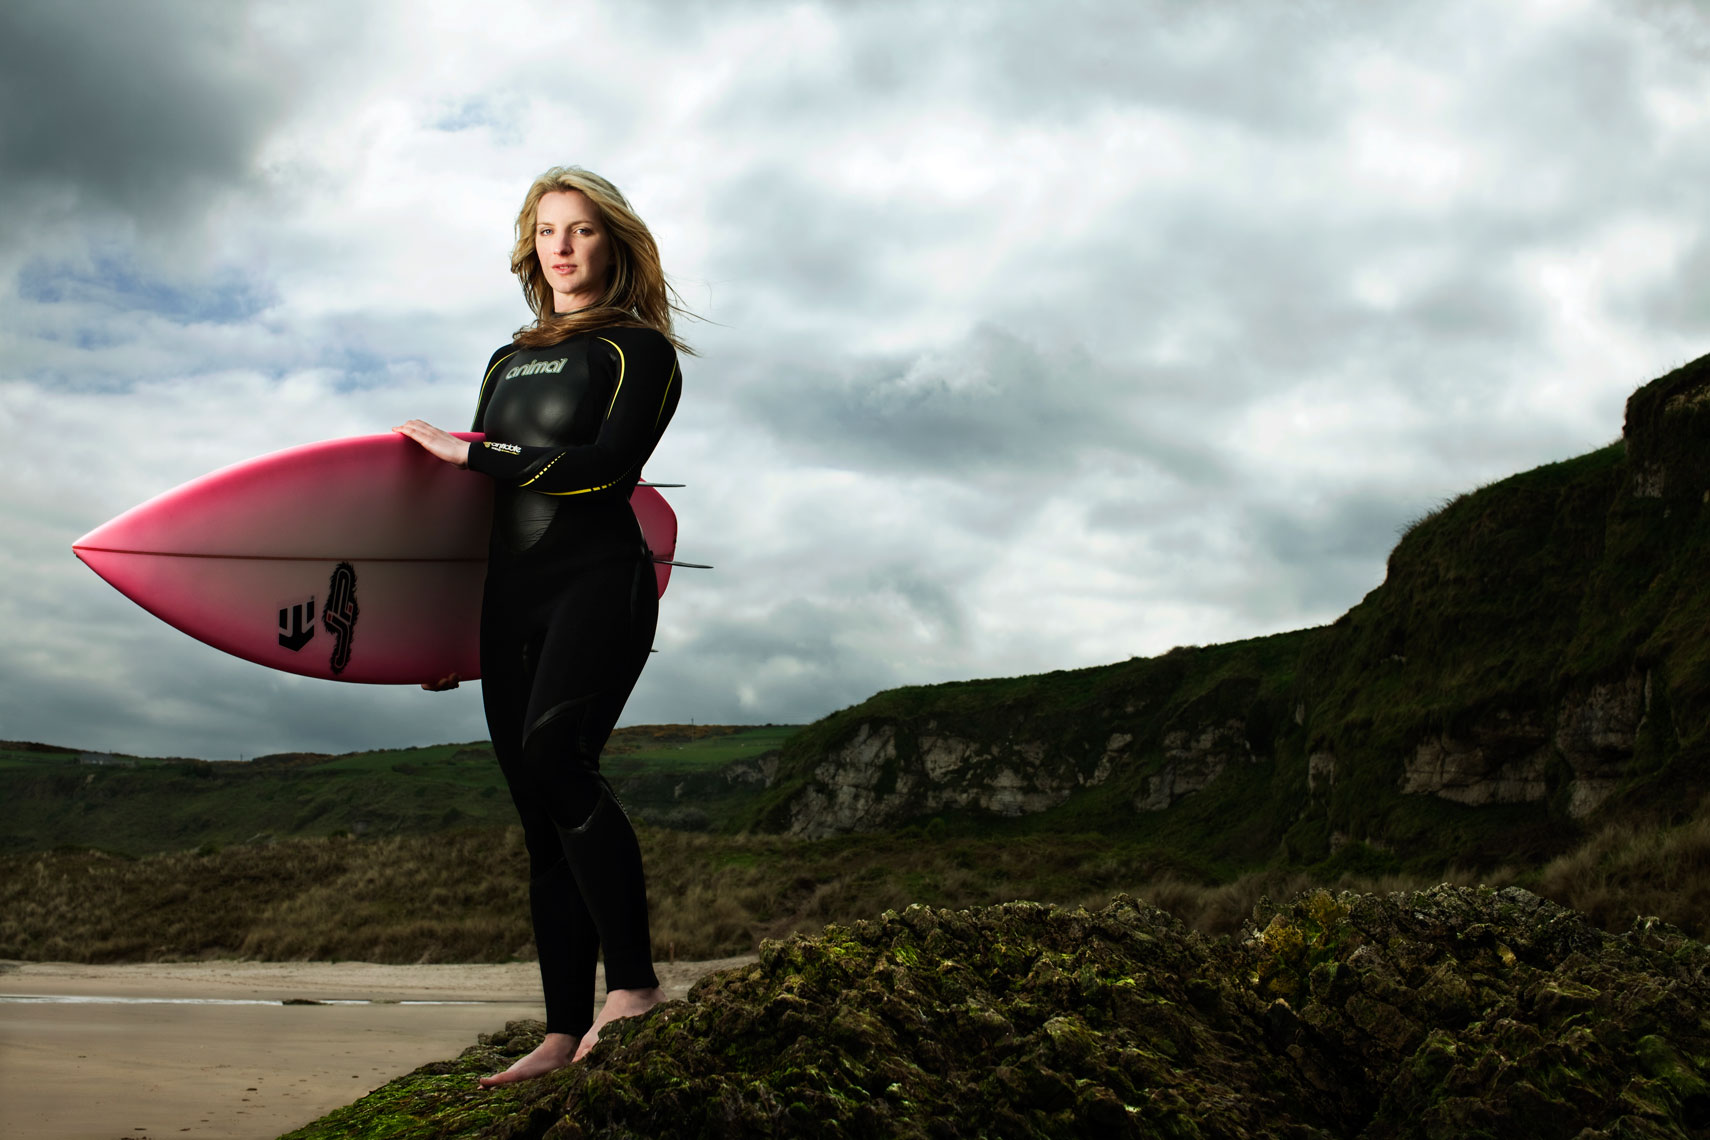 athlete portraits: easkey britton with surf board